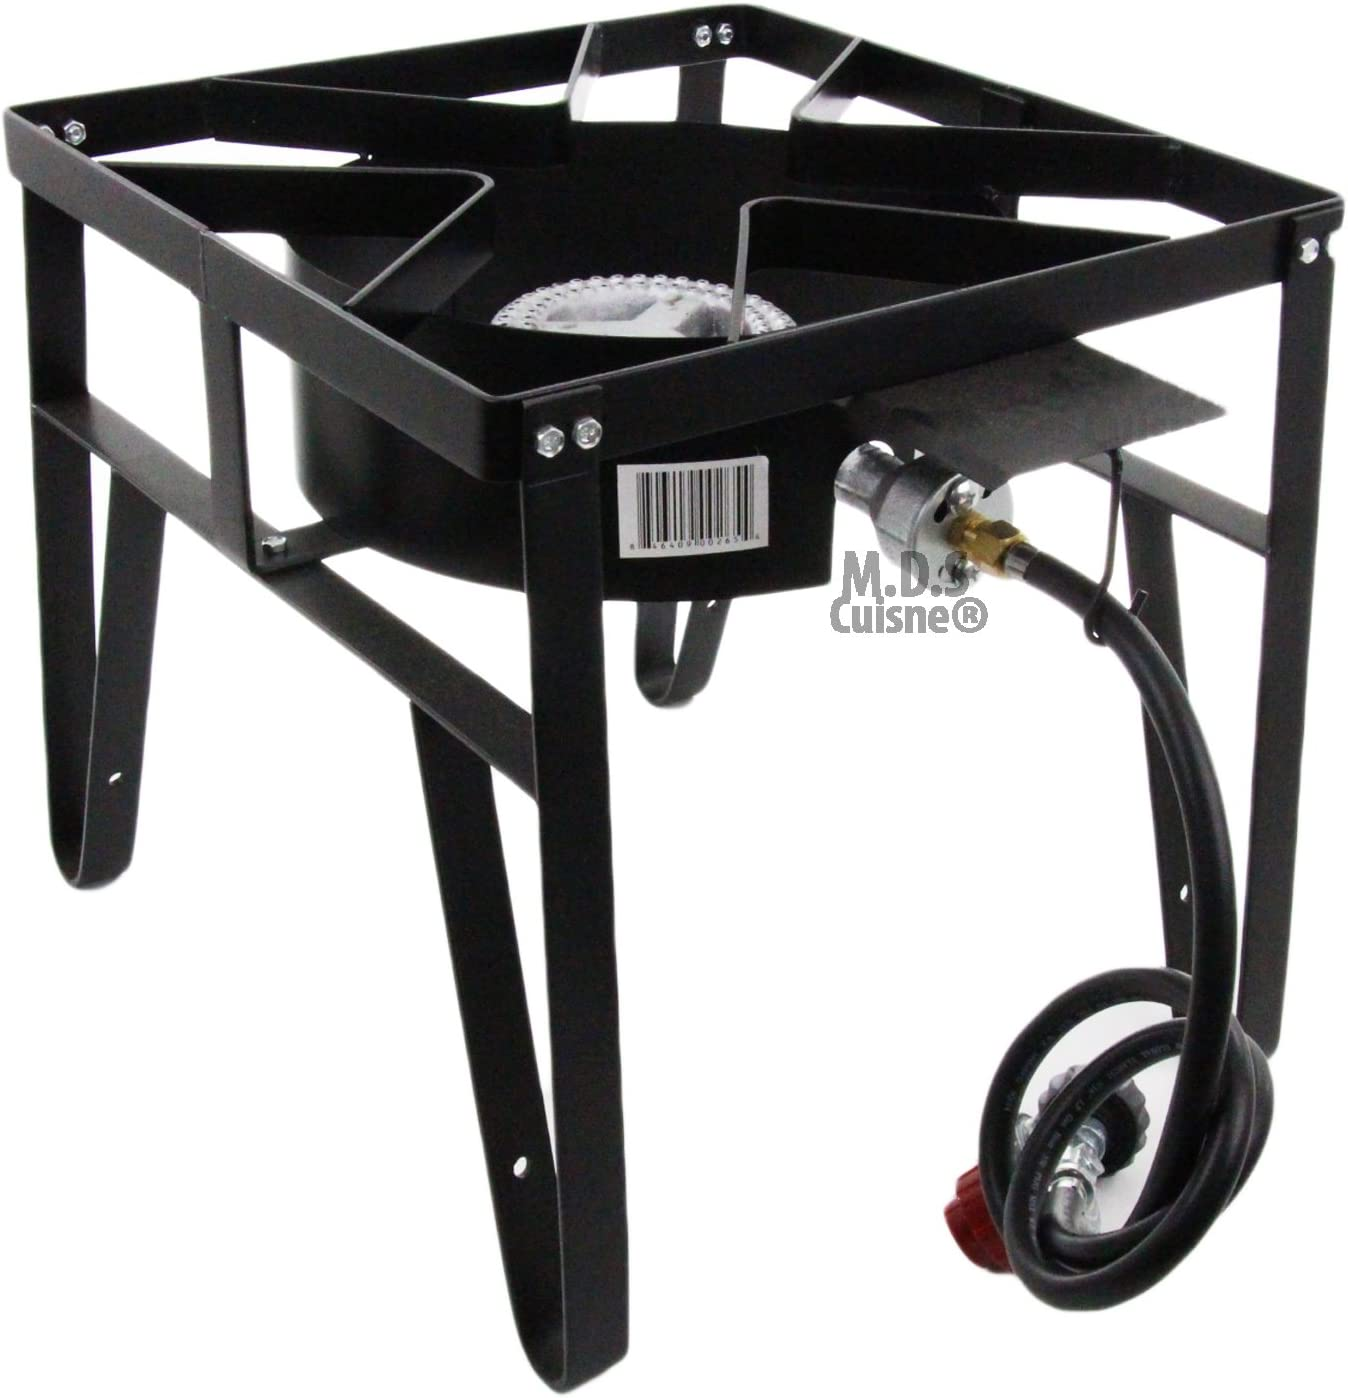 M.D.S Cuisine Cookwares Single High Pressure Gas Burner Square Patio Outdoor Stove Propane Camping Heavy Duty